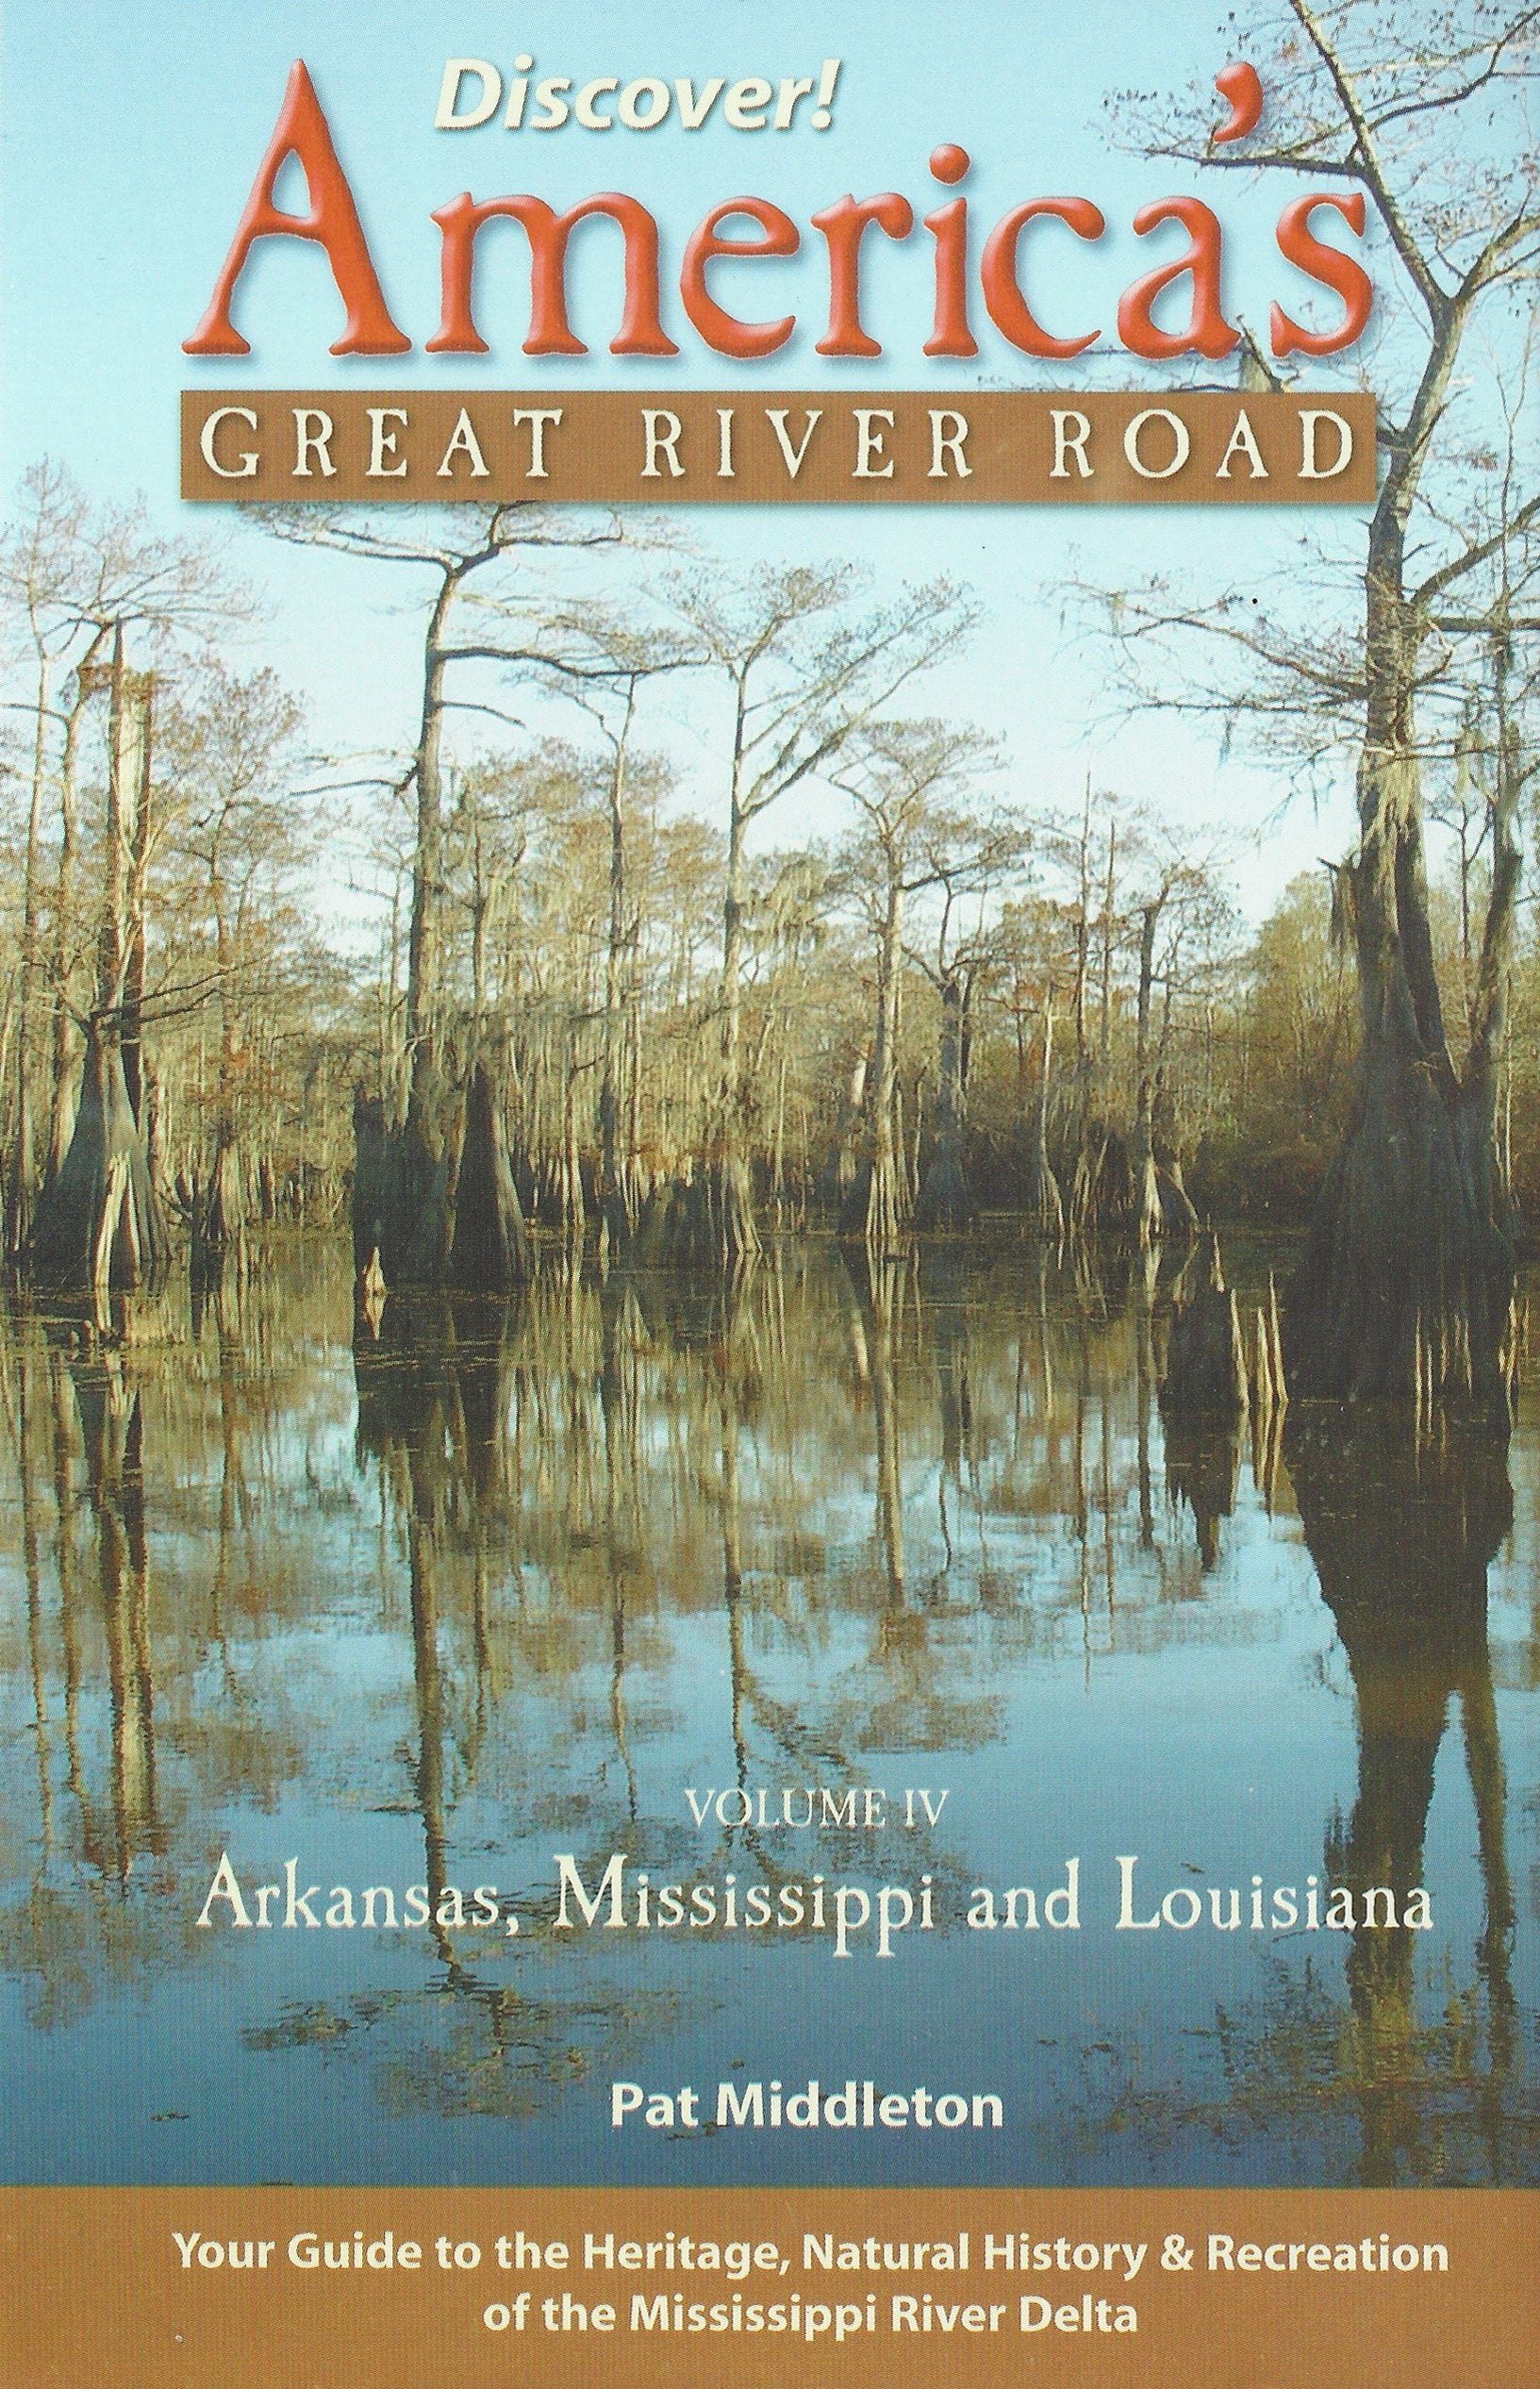 Discover America's Great River Road, Vol 4 - Memphis, TN to The Gulf of Mexico